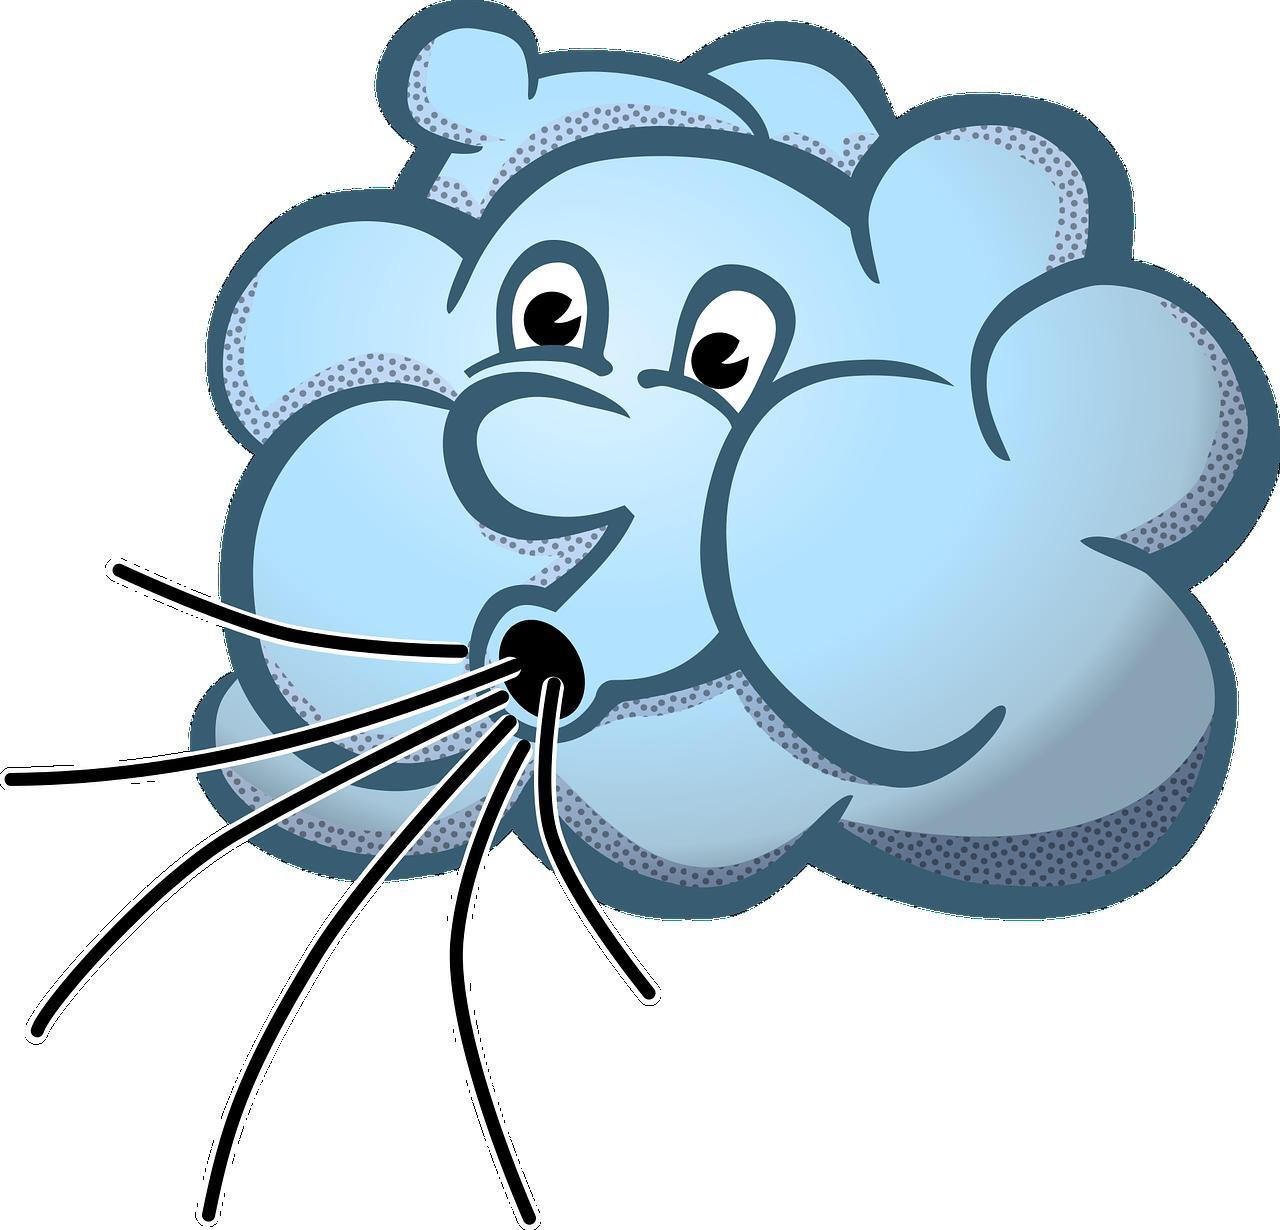 Windy Weather Clipart at GetDrawings.com.